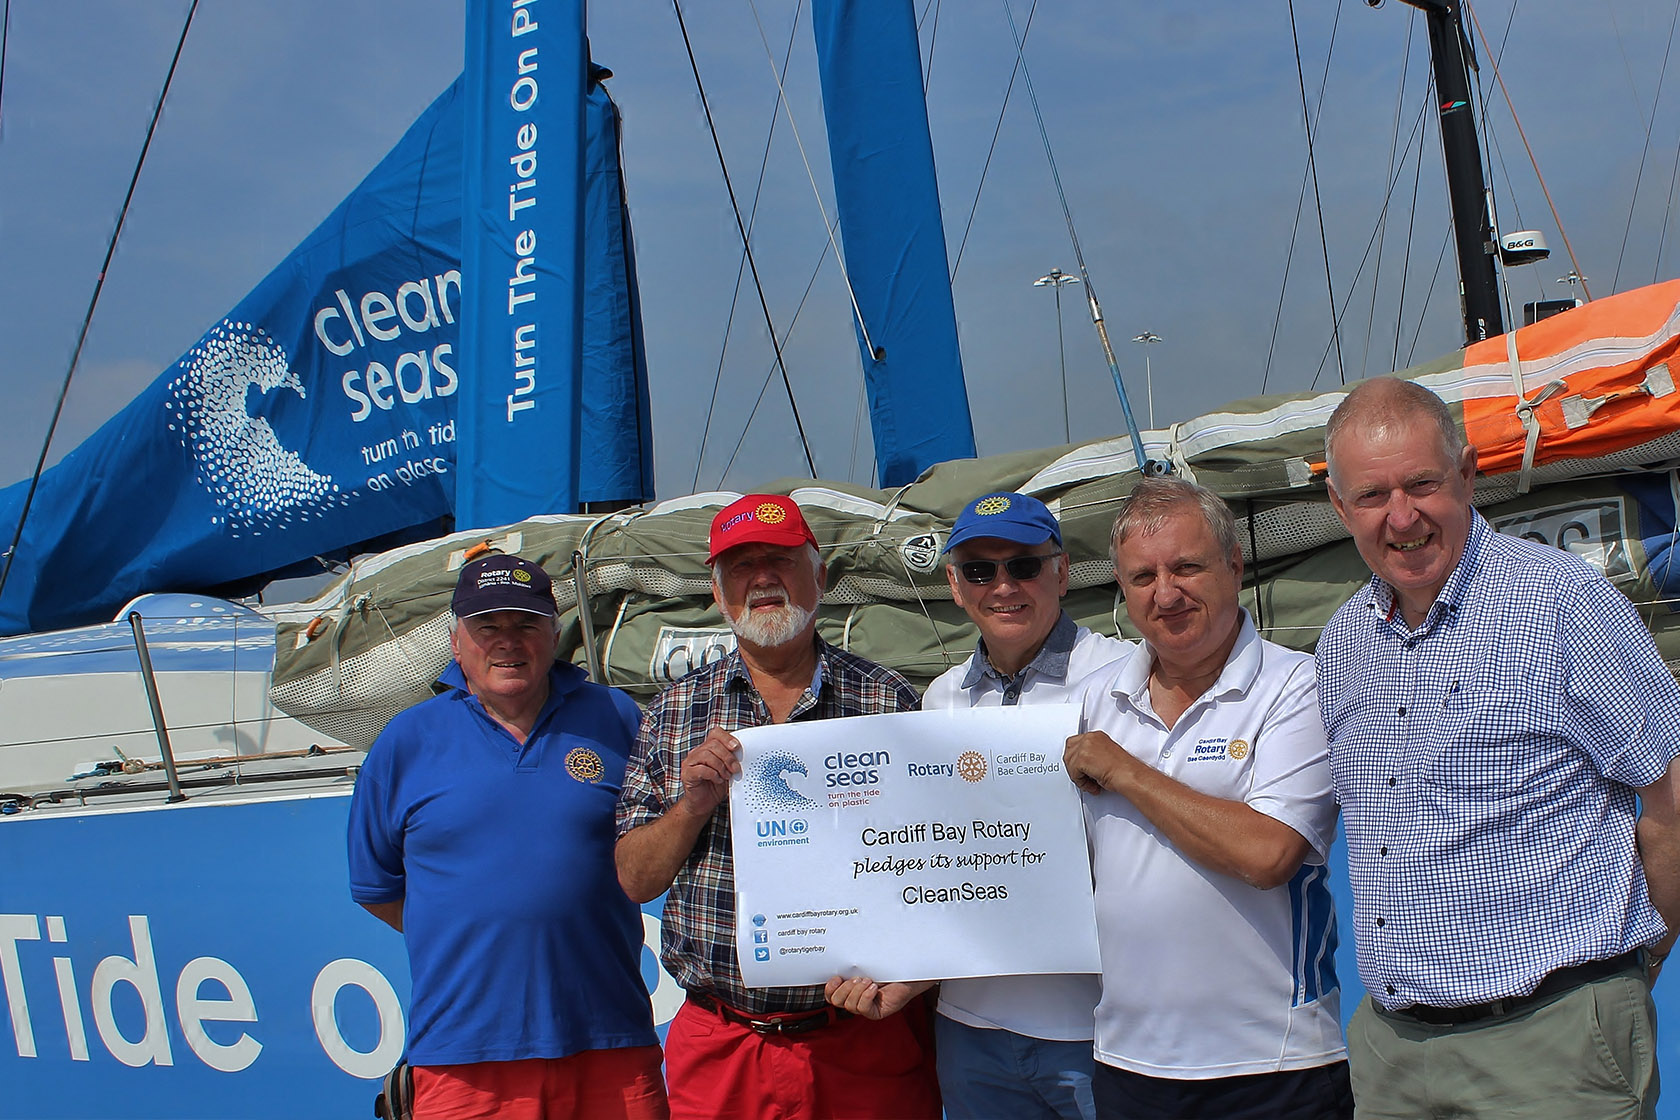 cardiff bay rotary support cleanseas